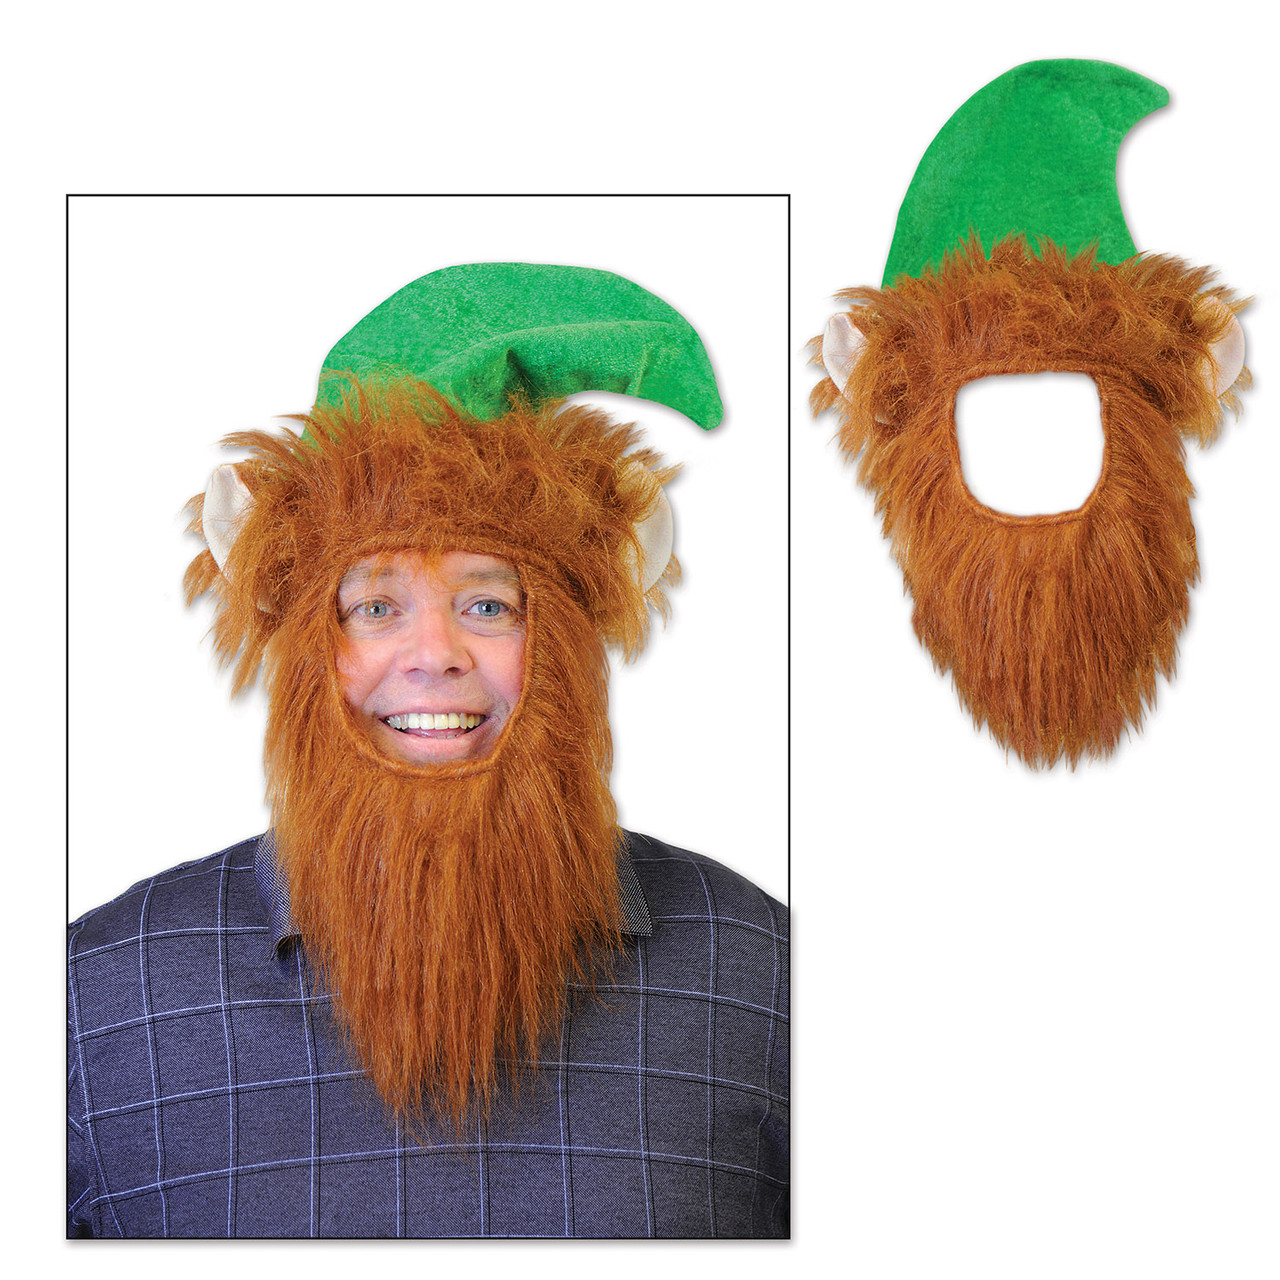 Pack Of 12 Green Hats With Fuzzy Beard Christmas Elf Costume Accessories 32729537